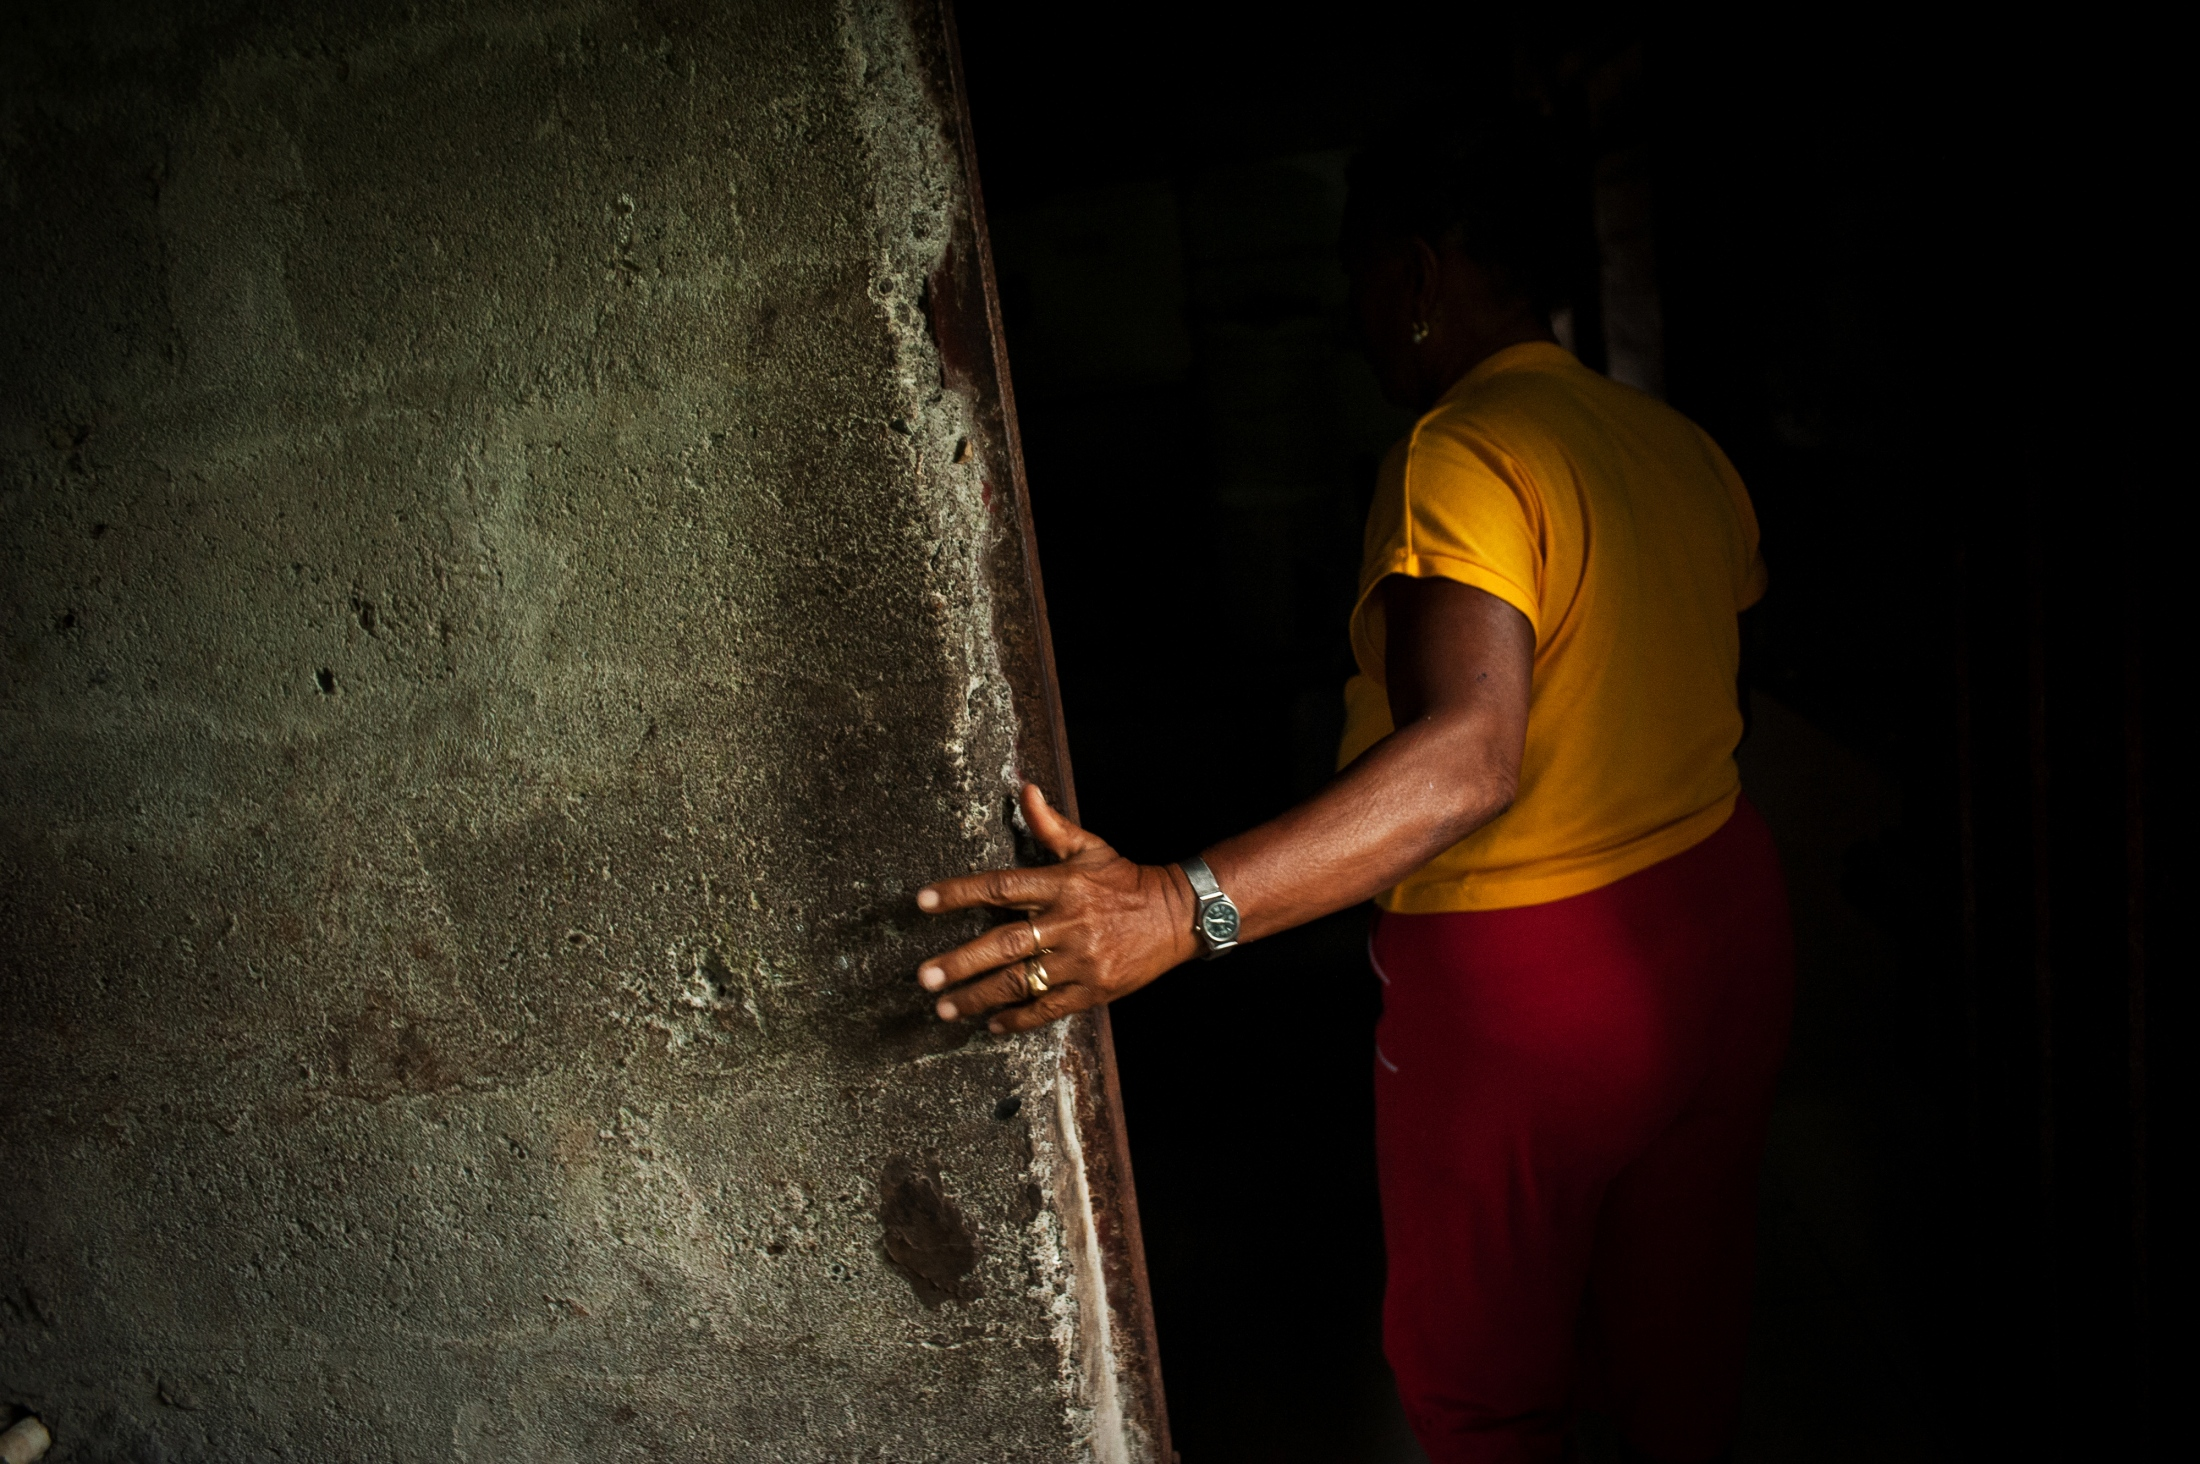 """""""They caught me because they wanted to harm him, they wanted to hurt my son, the people that kidnapped me just wanted to hurt him."""" Juana Padilla, a local community leader, was kidnapped in 2007 after her son was elected mayor of Tanguí, a town in the province of Chocó."""